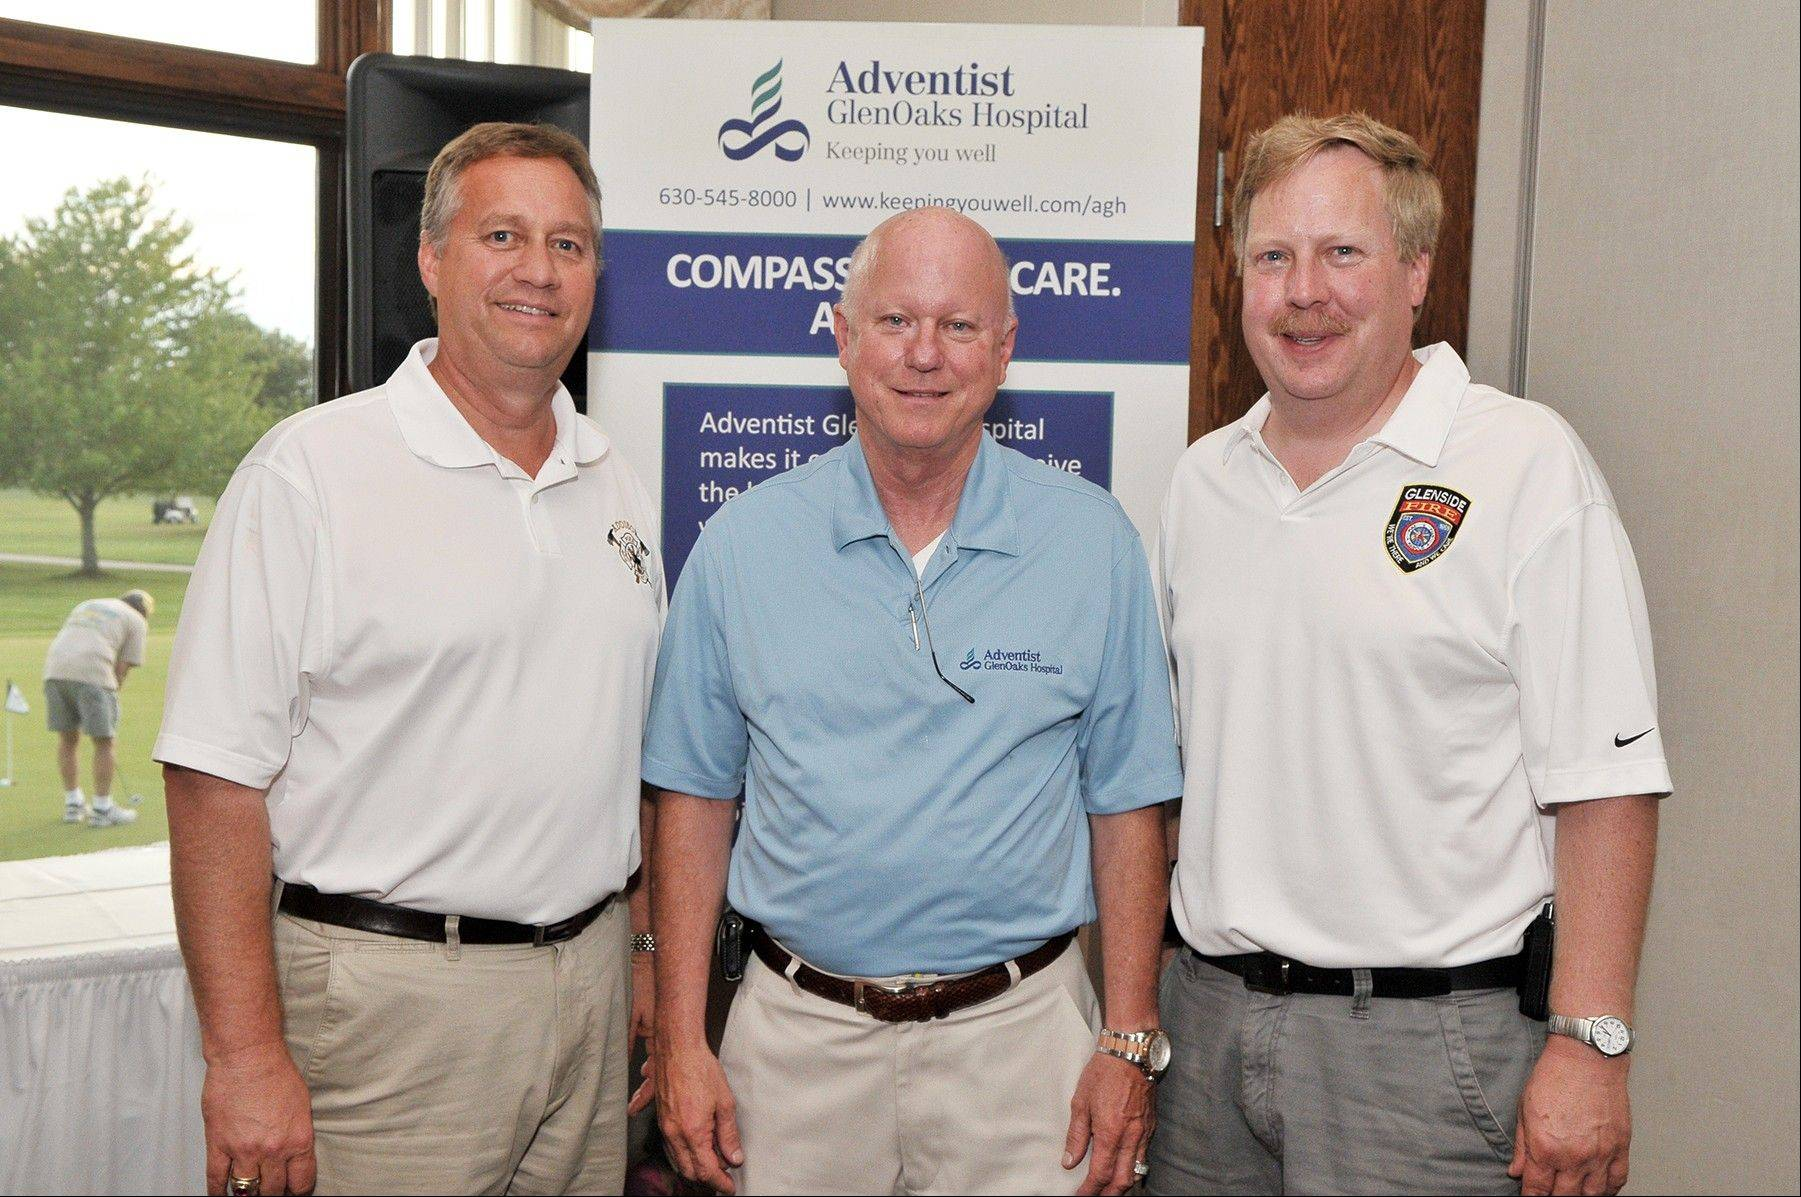 Addison Fire Protection District Chief Don Markowski, left, Adventist GlenOaksHospital CEO Bruce C. Christian, and Glenside Fire Protection District Chief Russ Wood attended the hospital's annual EMS Appreciation Golf Outing in Glendale Heights.